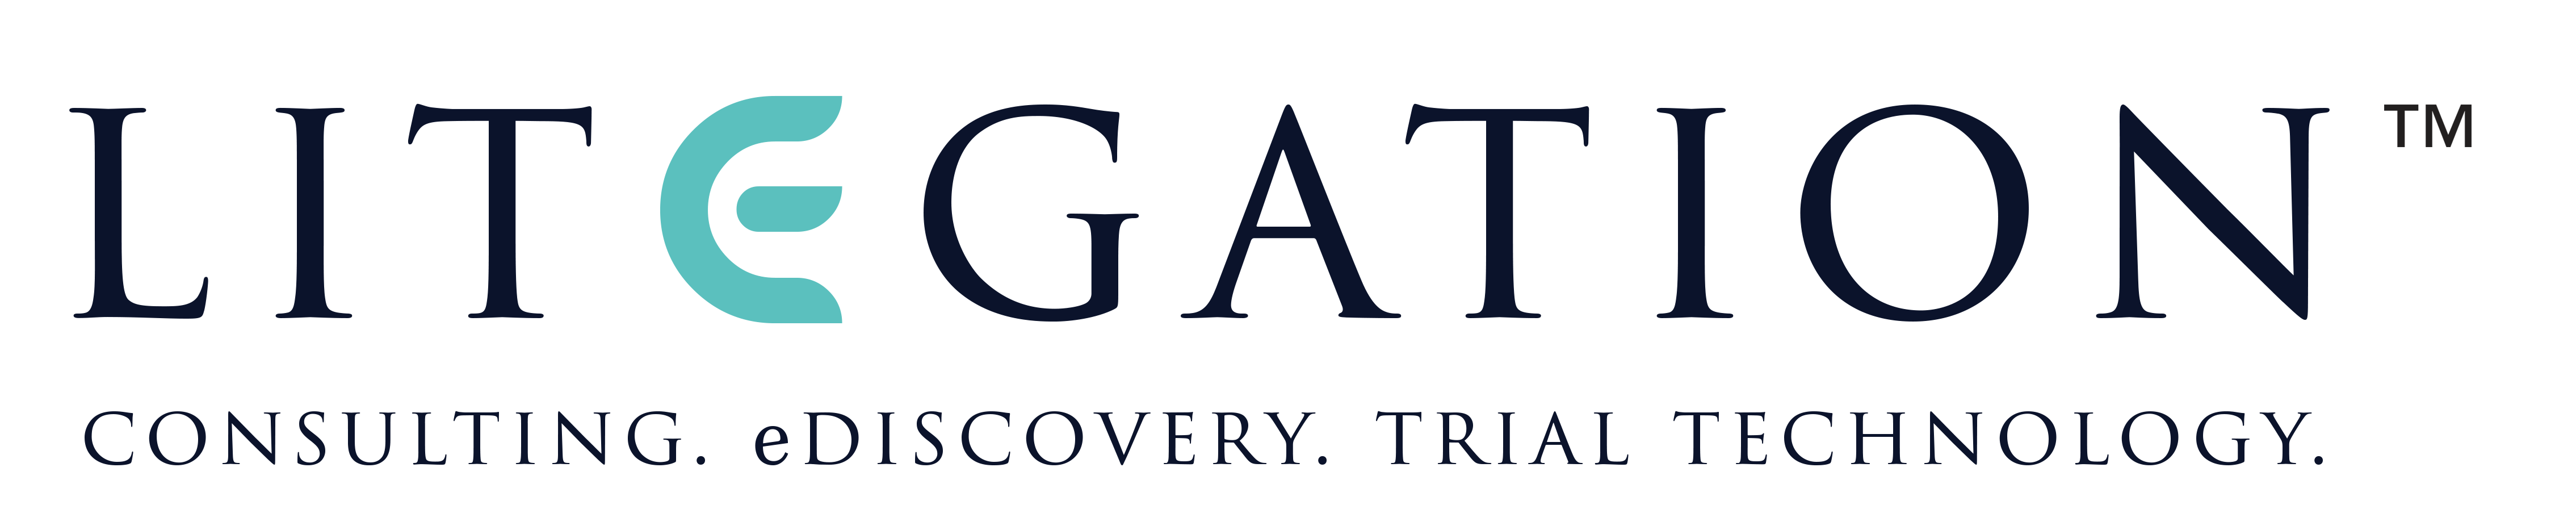 The Leaders in Litigation Support, eDiscovery and Trial Technology Services